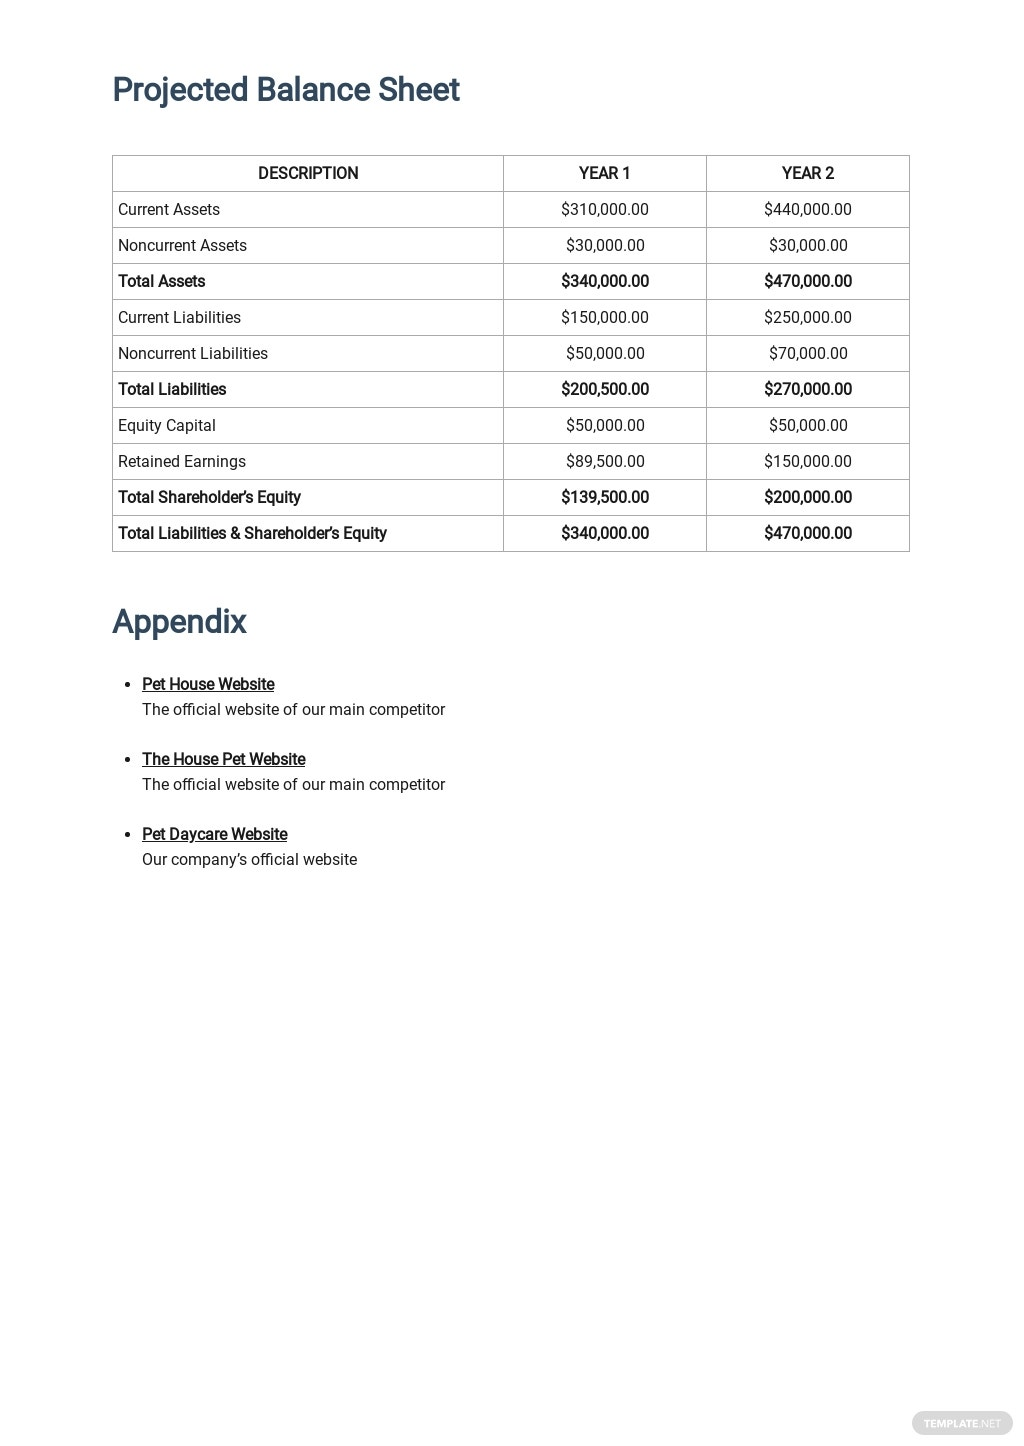 Animal Day Care Business Plan Template 6.jpe